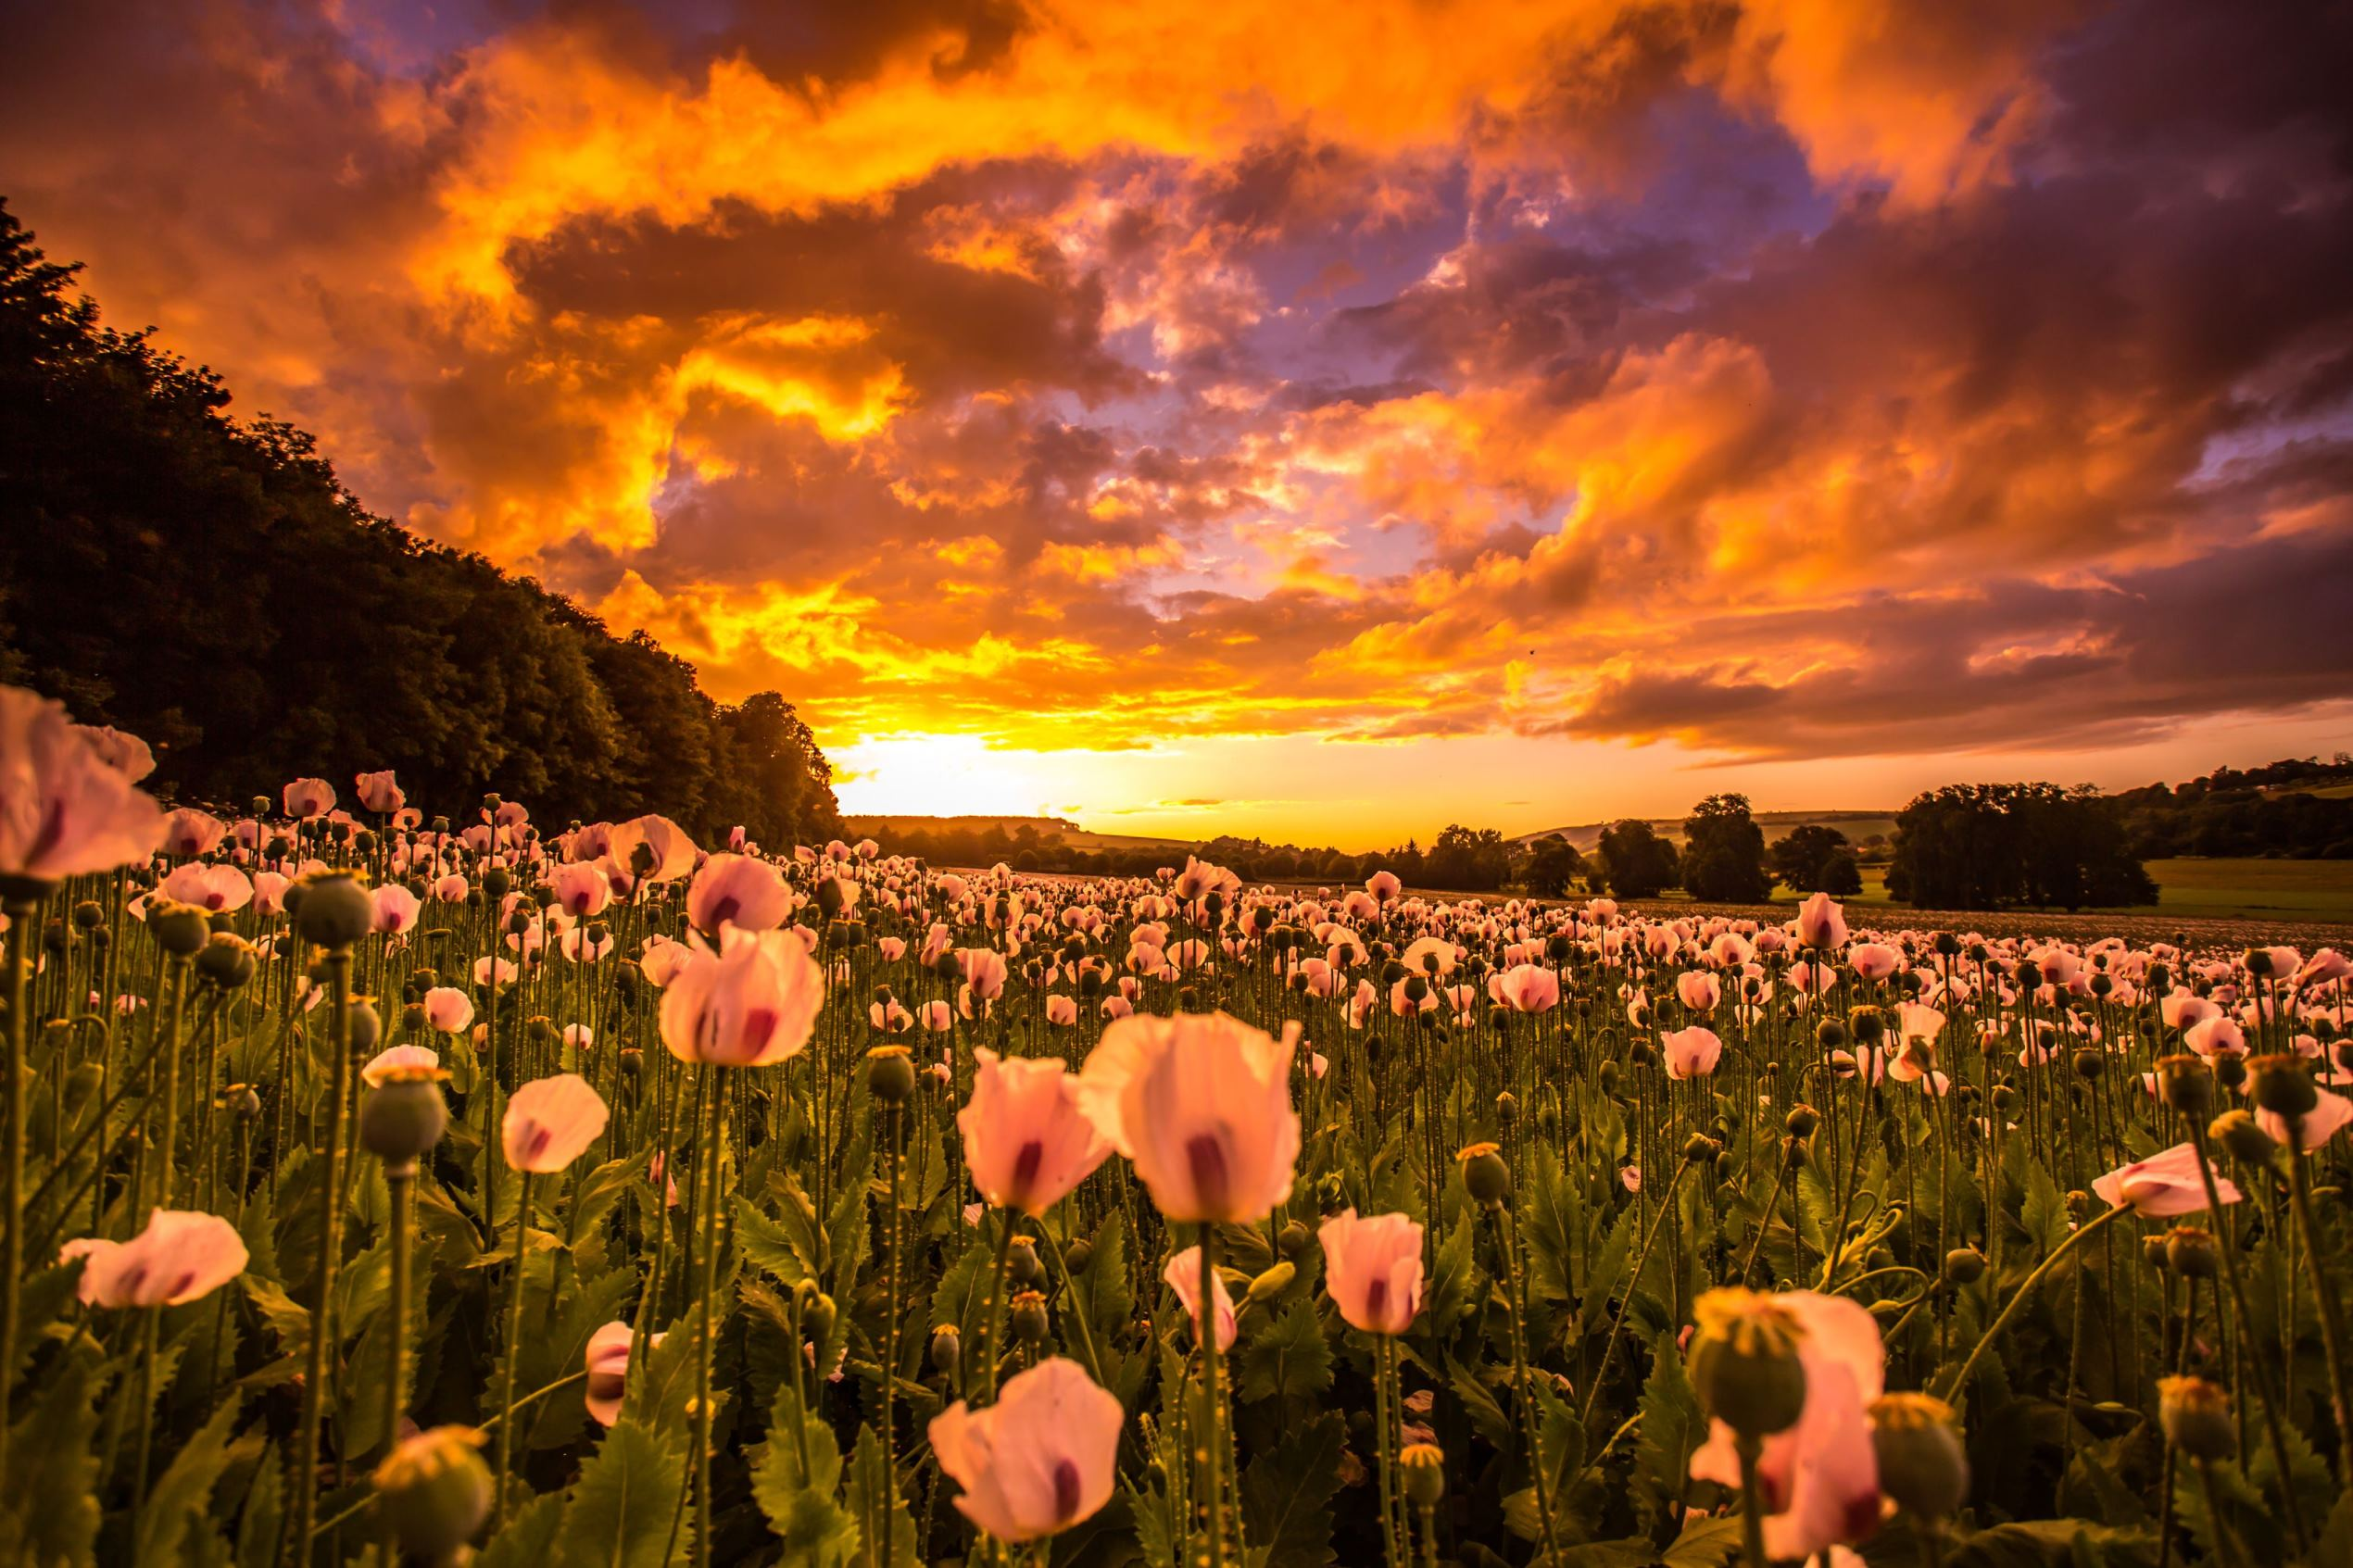 Слайд 59 из 86: Poppy field at sunset, Wimborne, Dorset, UK - 24 Jun 2016 Poppy field at sunset